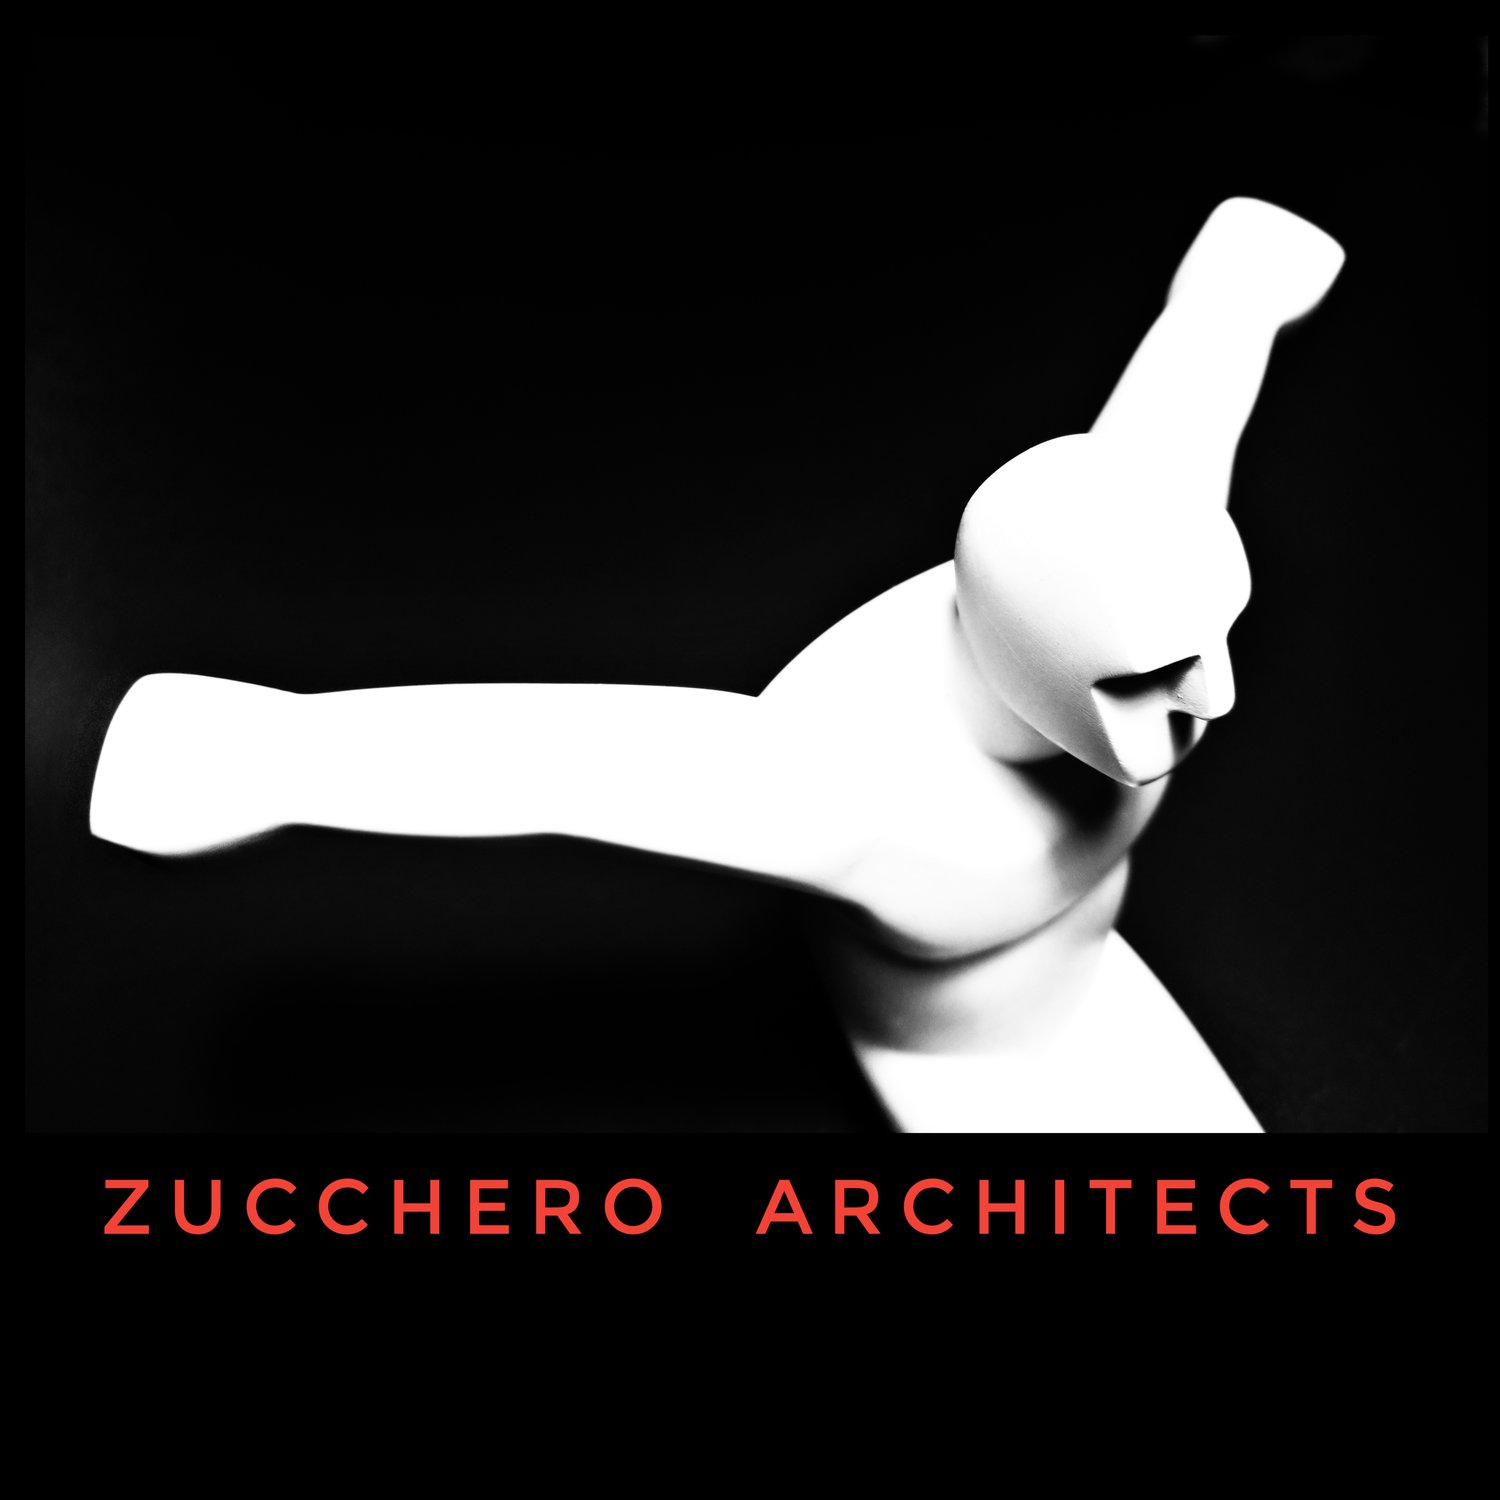 ZUCCHERO ARCHITECTS